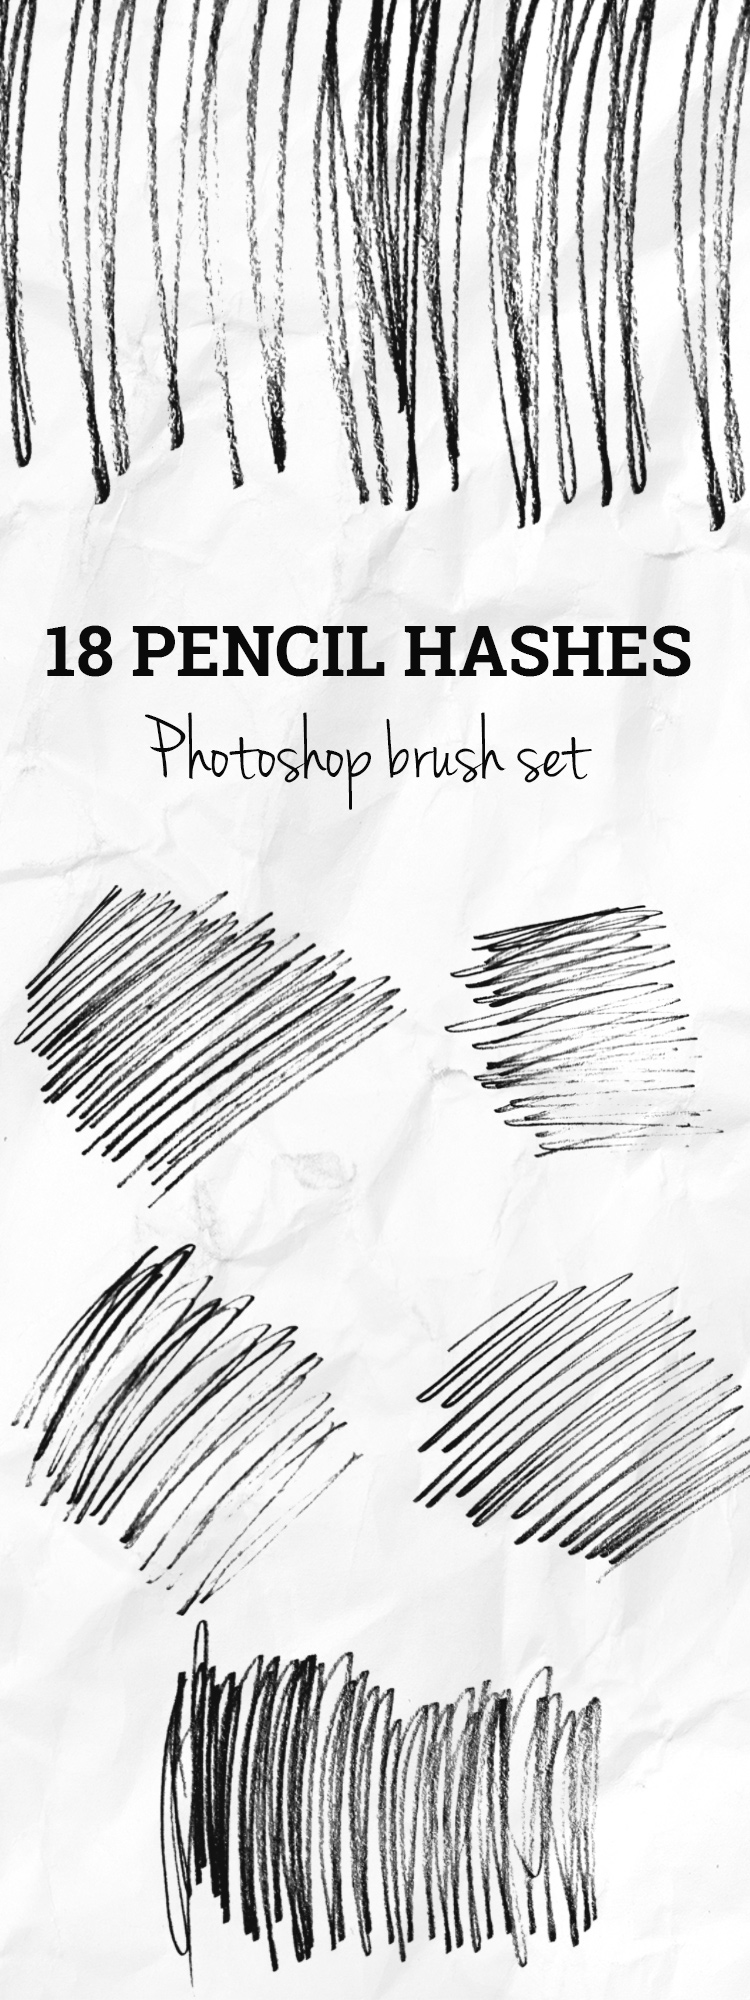 pencil-hashes-photoshop-brush-set